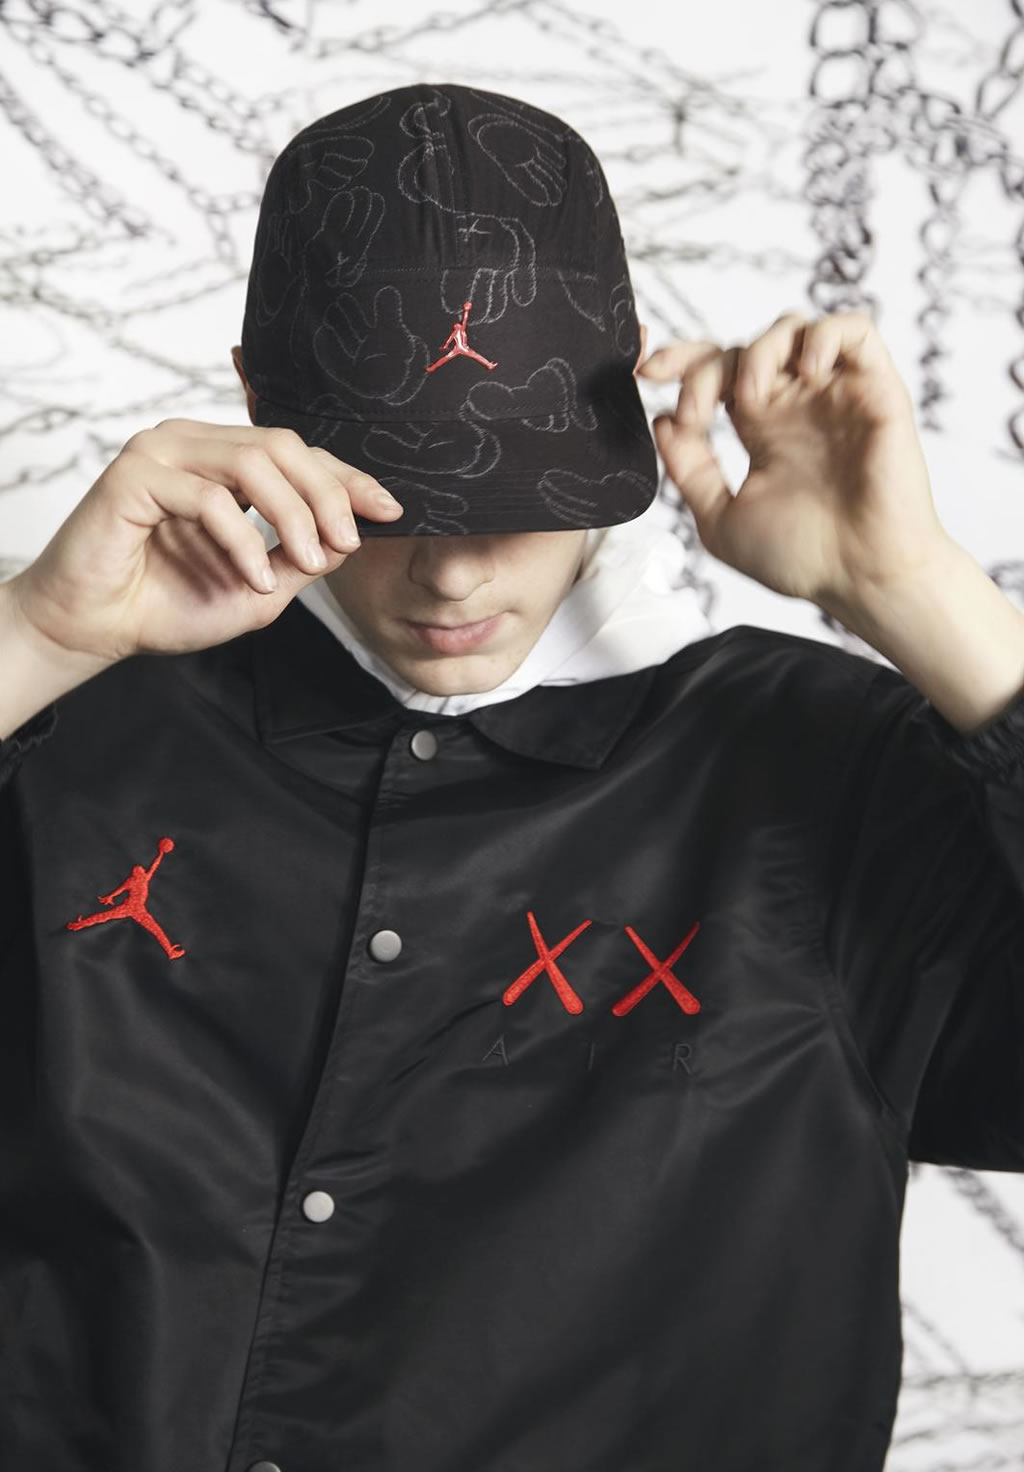 Hat, Capsule Collection By KAWS And Jordan